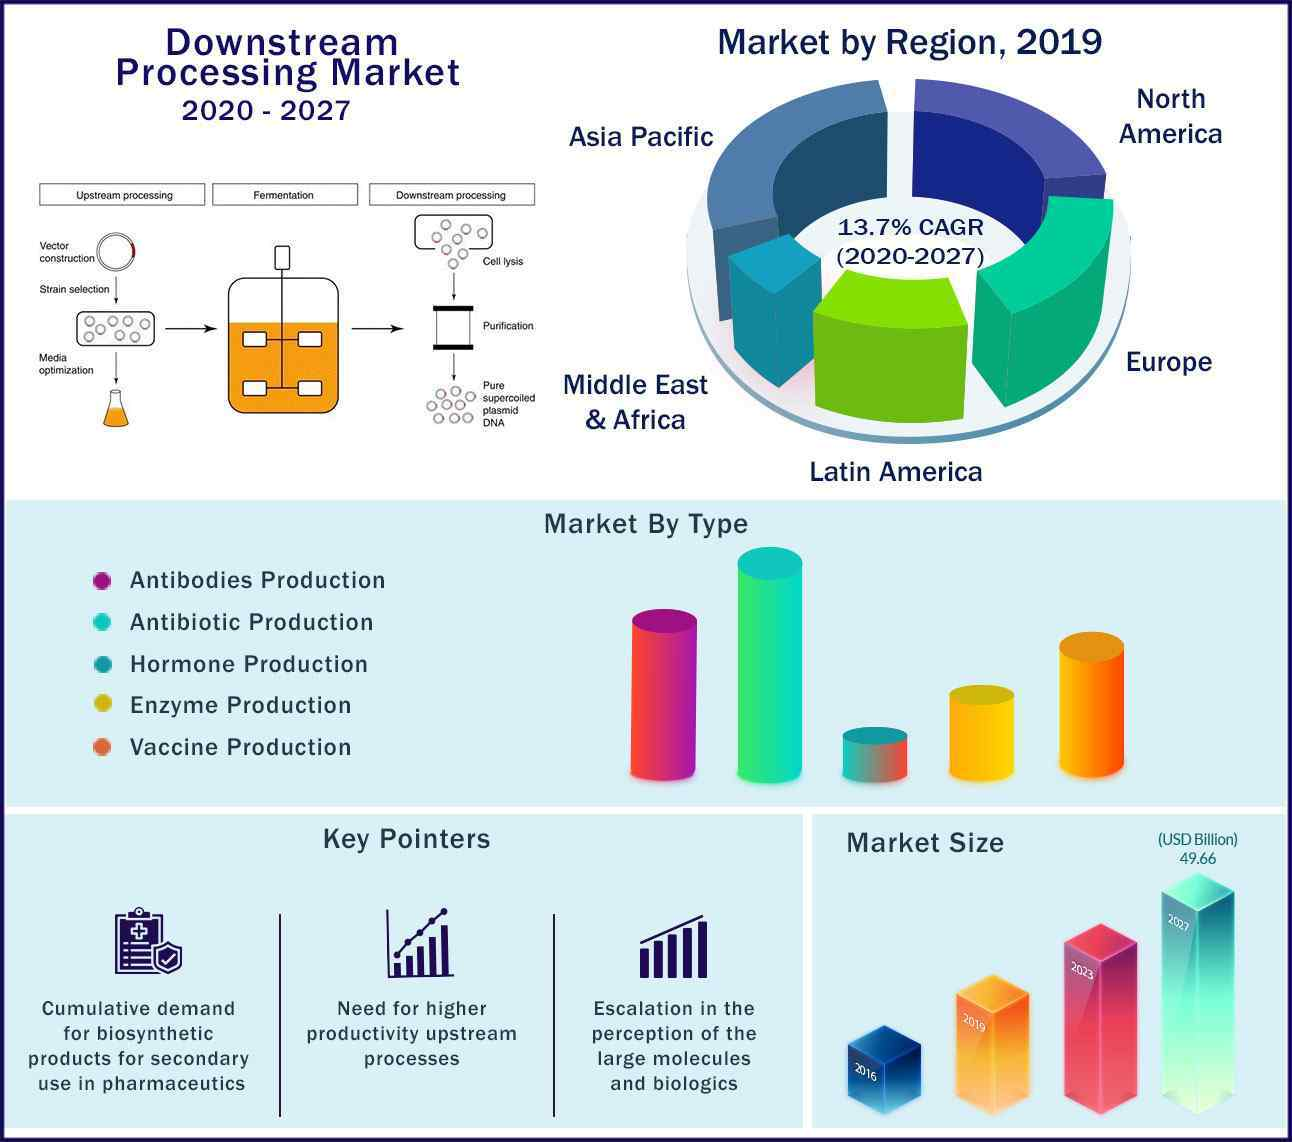 Global Downstream Processing Market 2020 to 2027